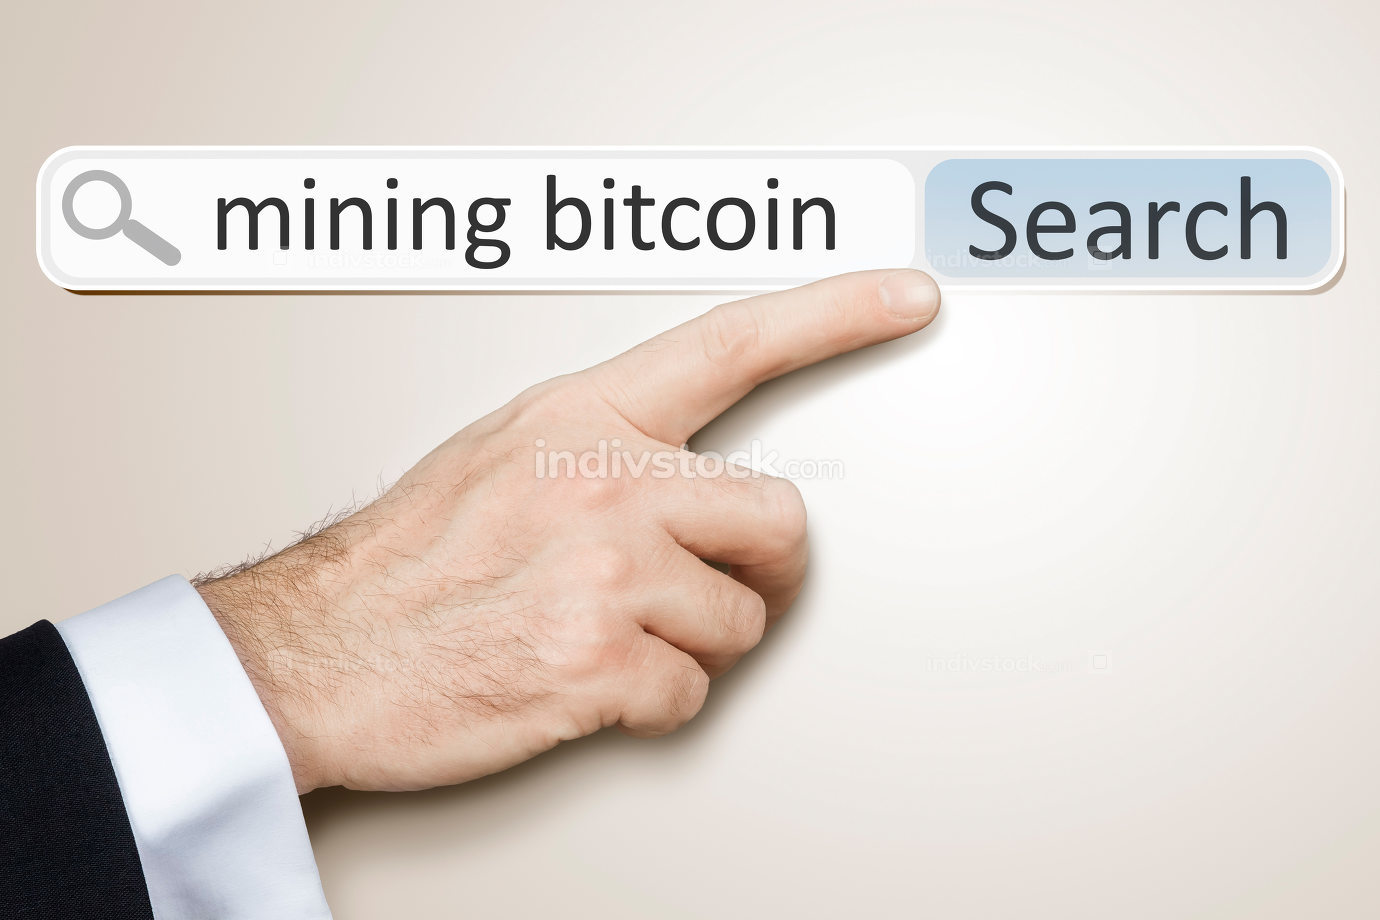 web search for mining bitcoin